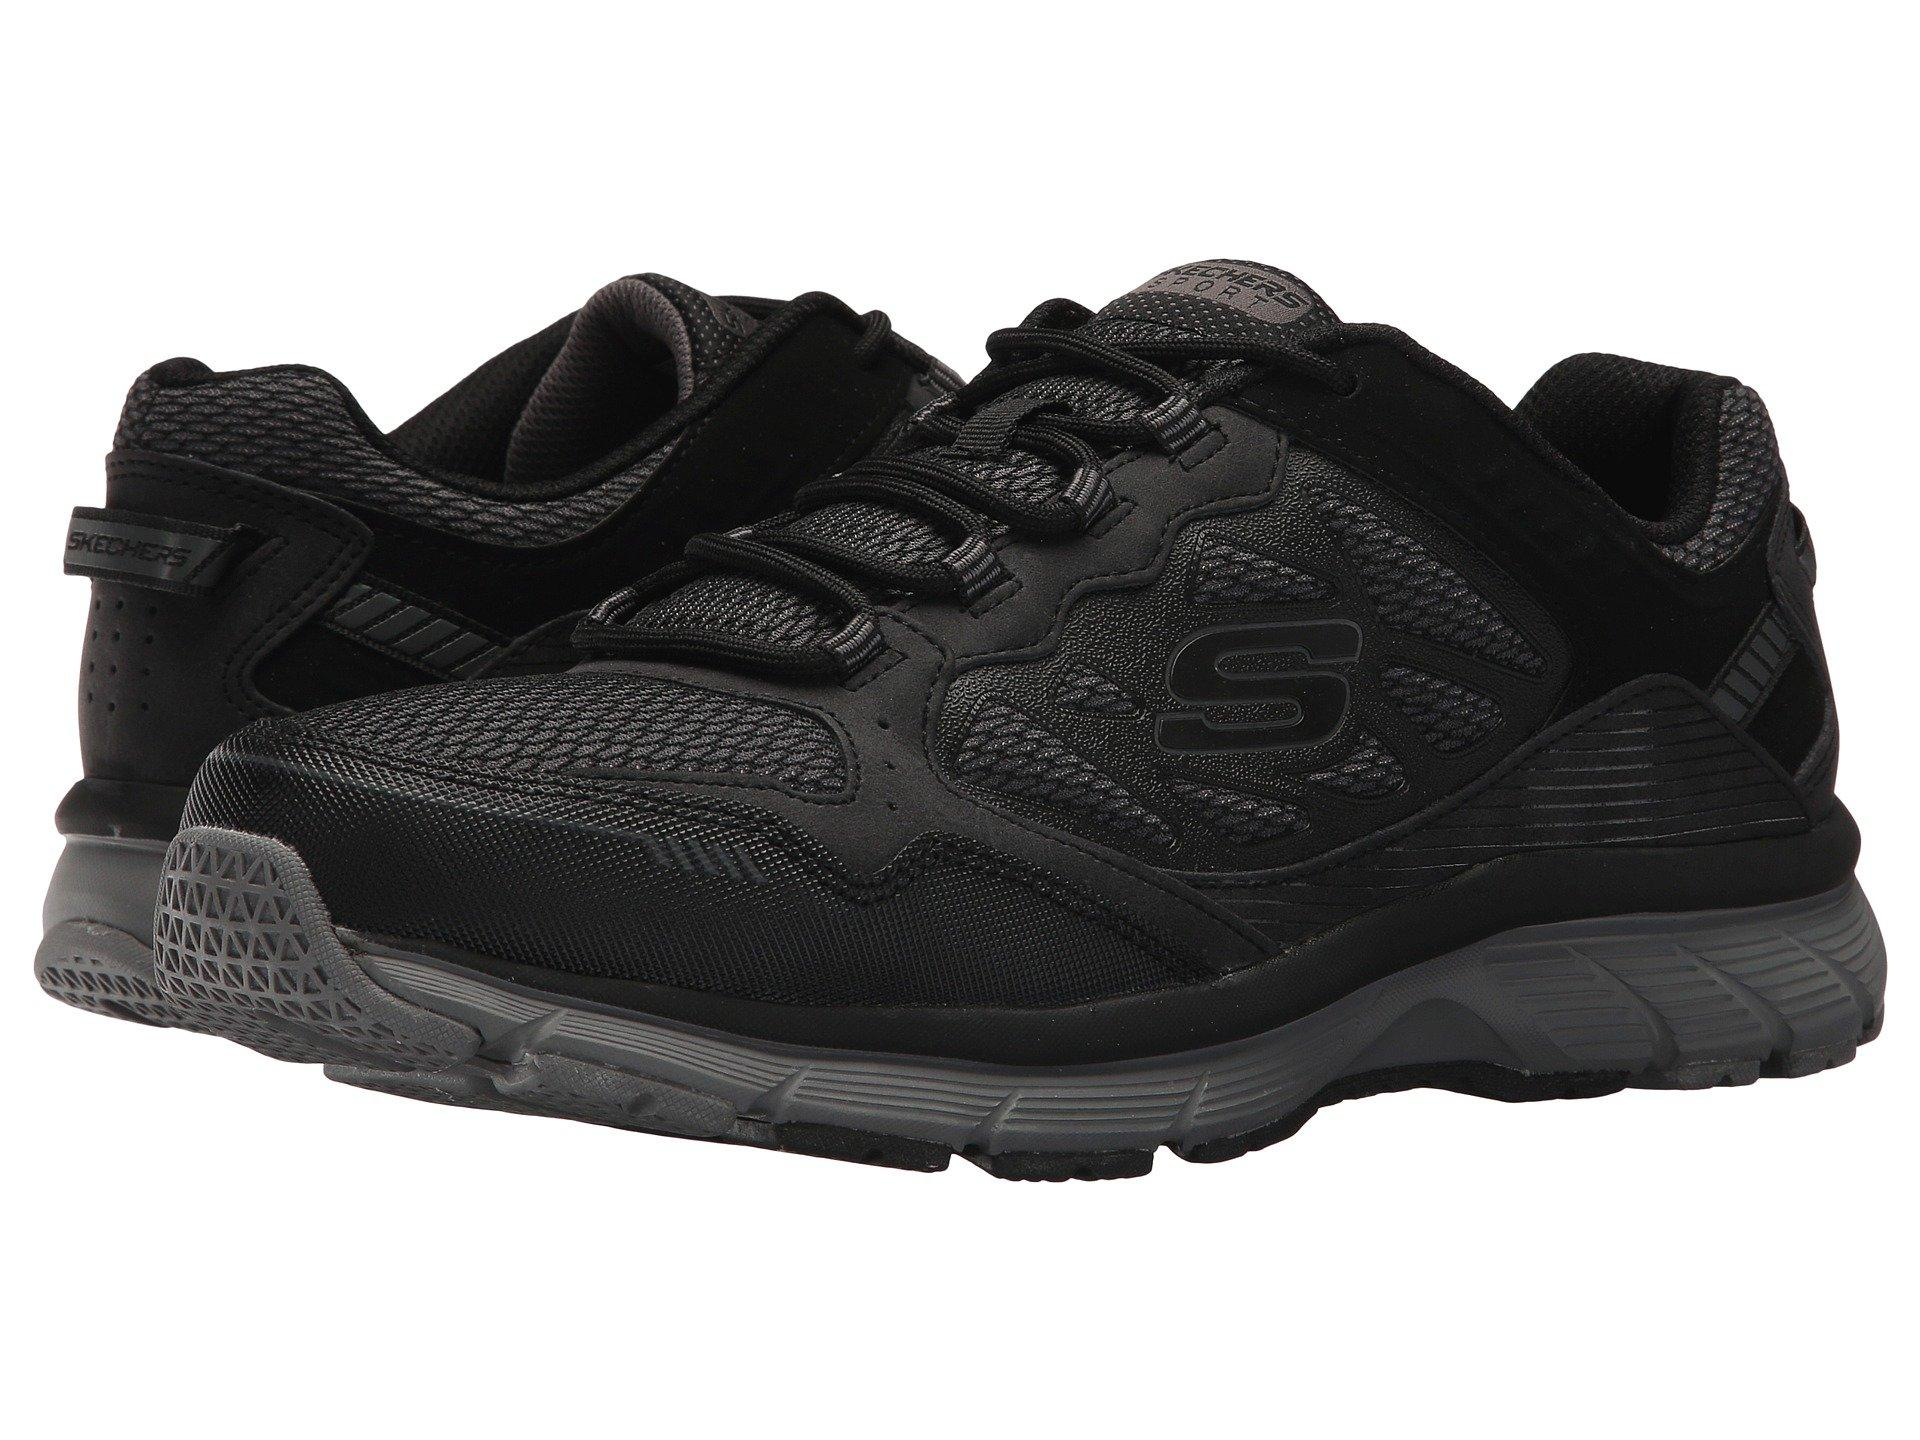 Marcha mala Acrobacia Traición  Skechers Leather Bowerz in Black for Men - Lyst